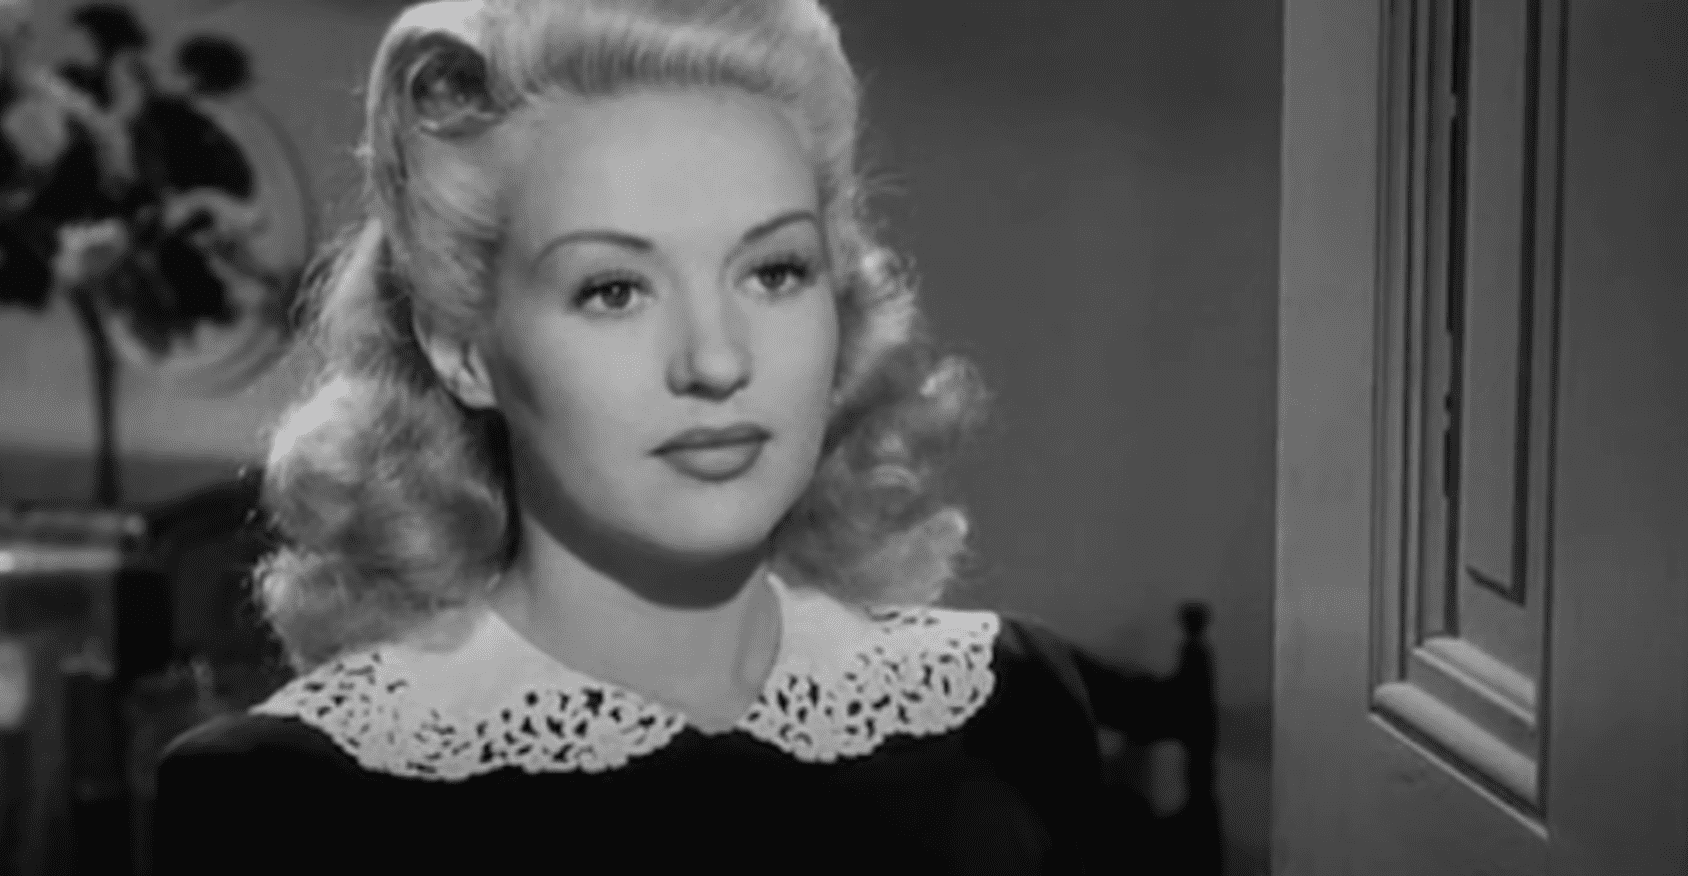 Image Source: Youtube/Mo10ta| Betty in one of her movies